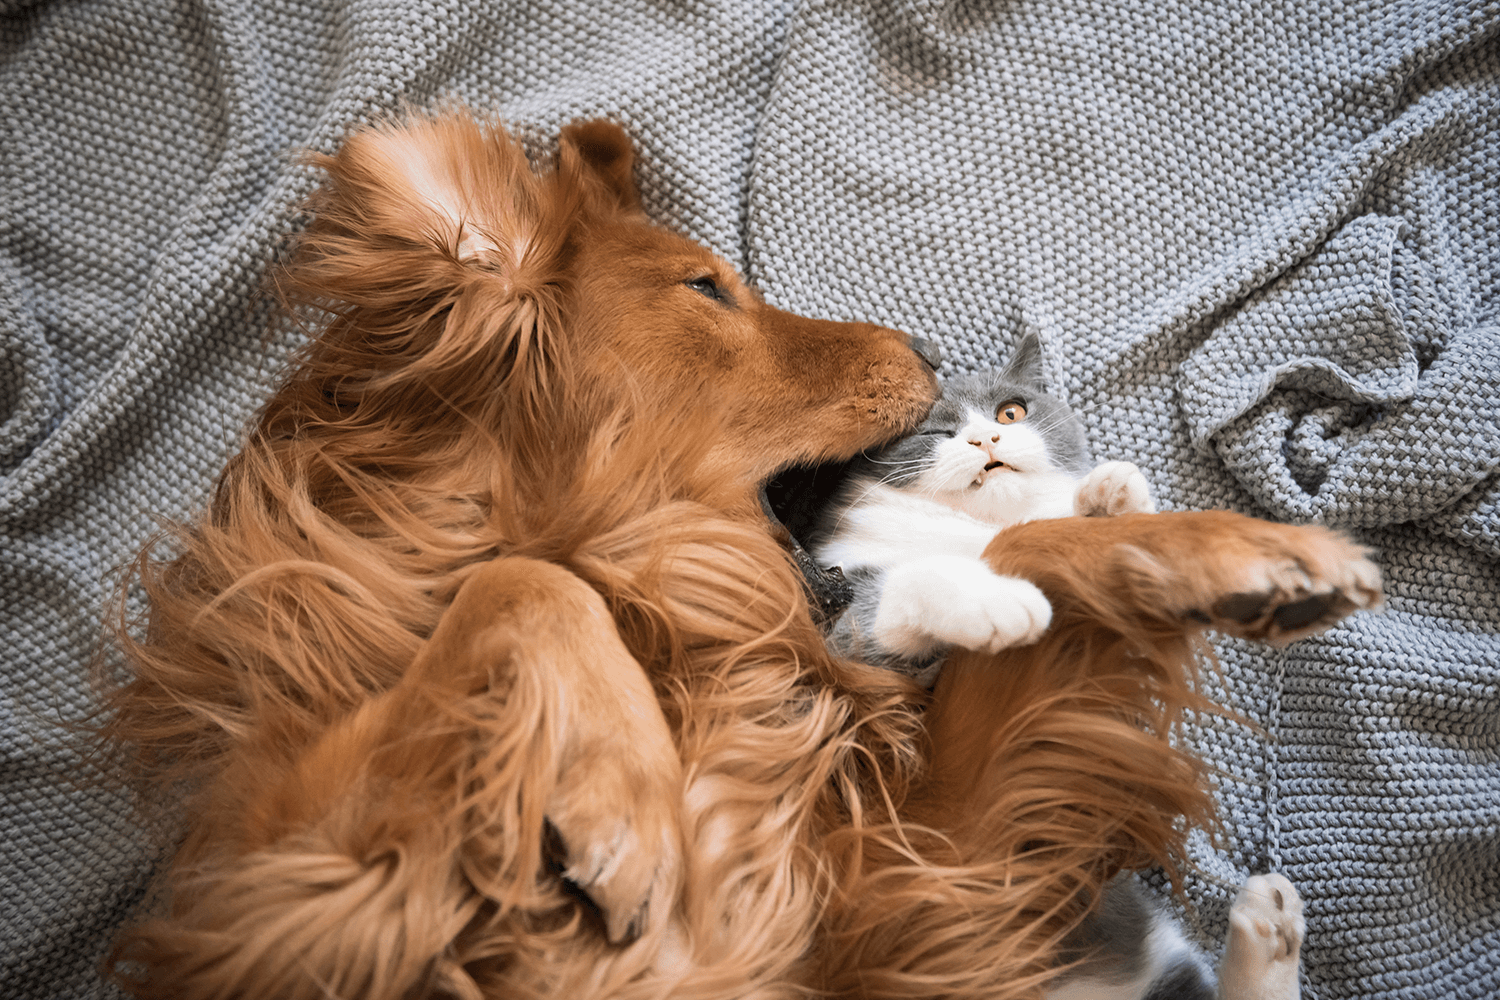 dog and cat playing on a blanket